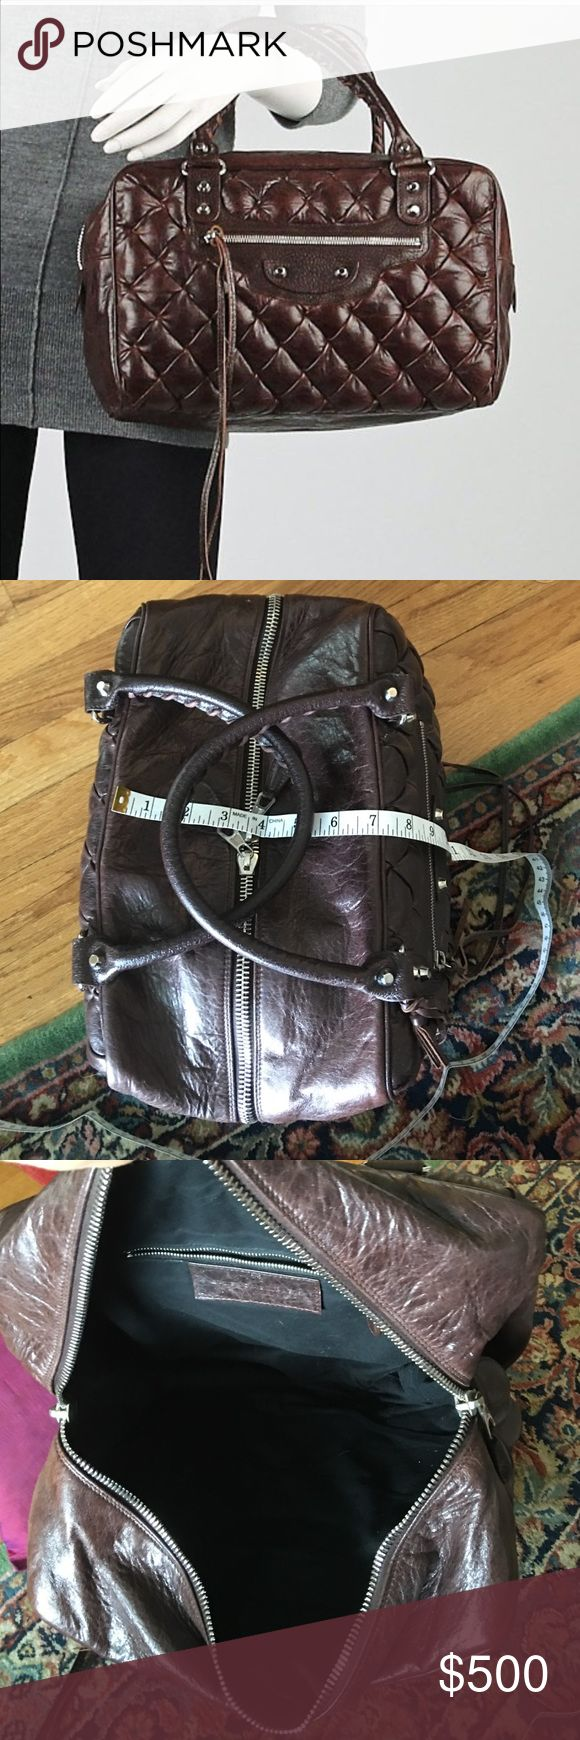 BALENCIAGA Truffle Quilted Chevre Leather  Bag Quilted bubble goatskin leather, this rich brown very sought after bag, gently used by Balenciaga Paris. Authentic made in Italy # 168031.213048 serial number. Balenciaga Bags Satchels